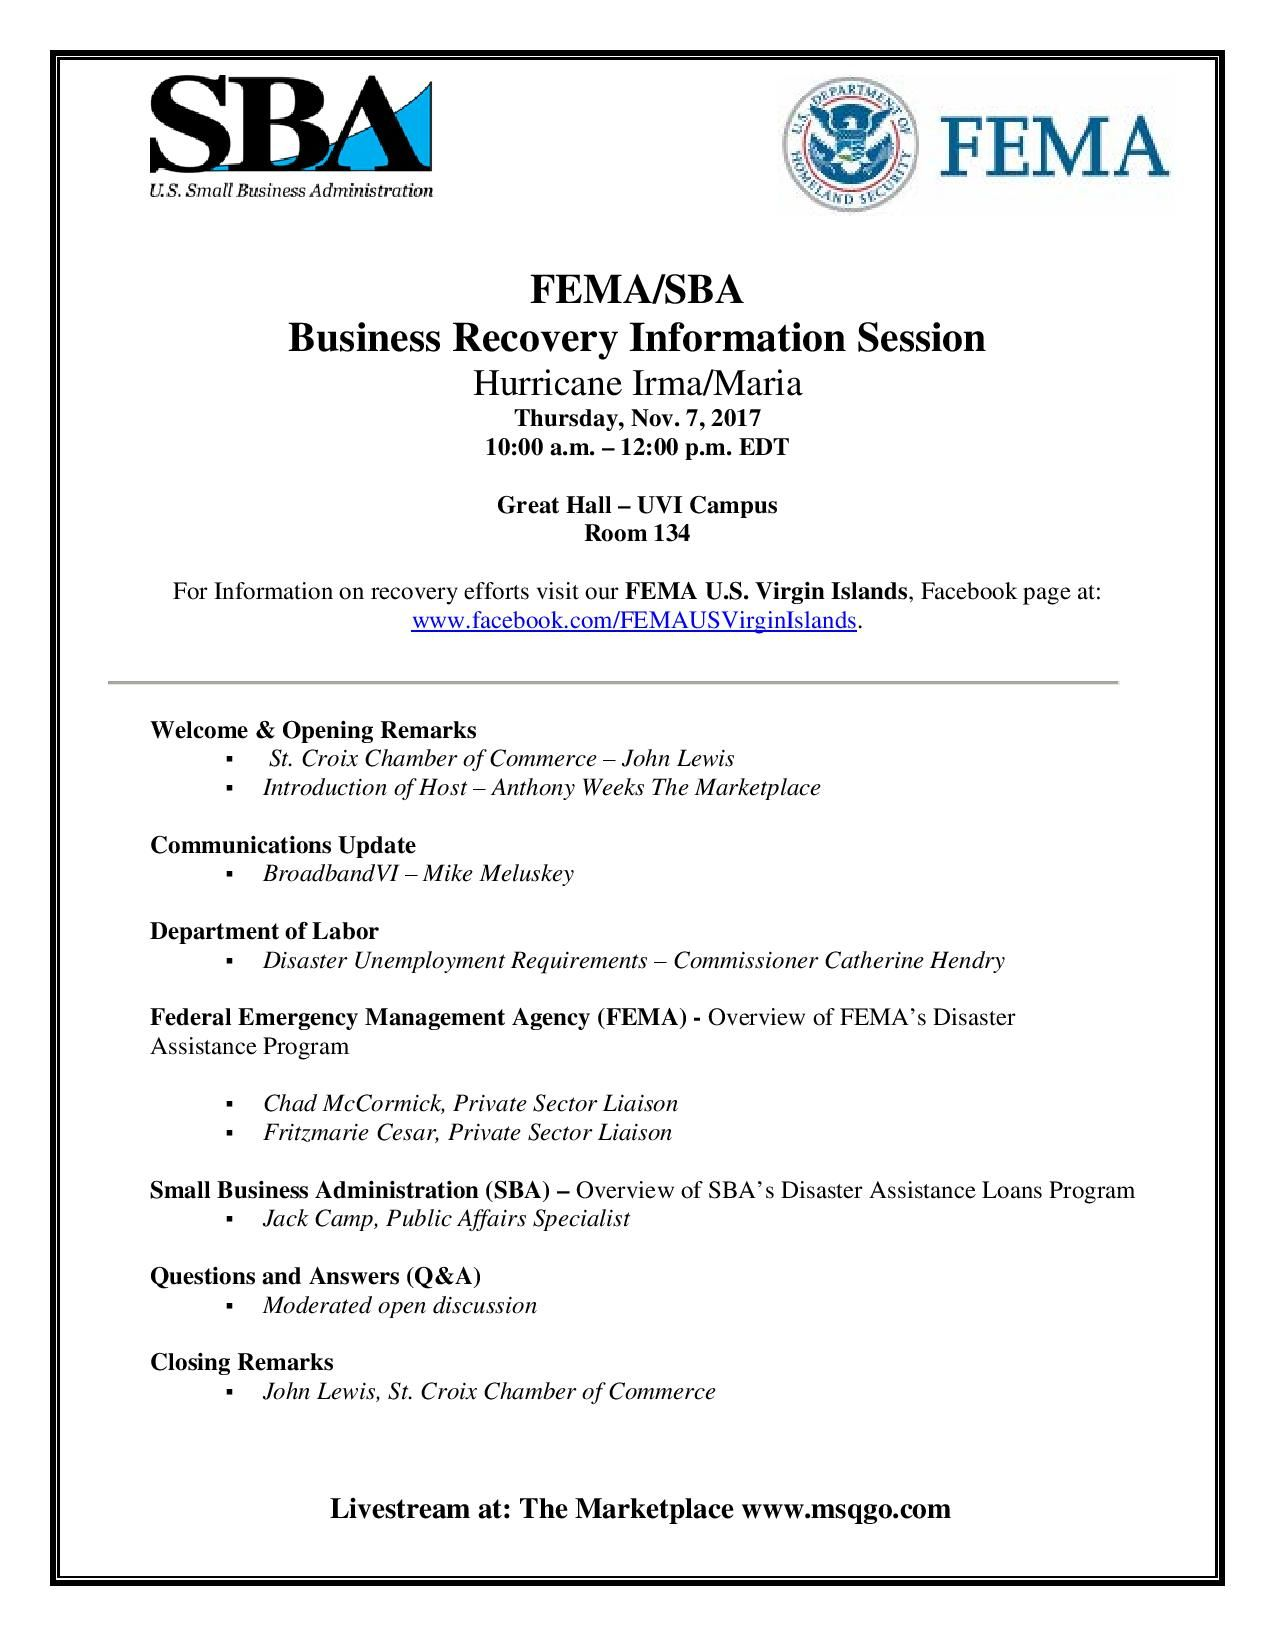 Please Join The St Croix Chamber Of Commerce To Hear From Fema